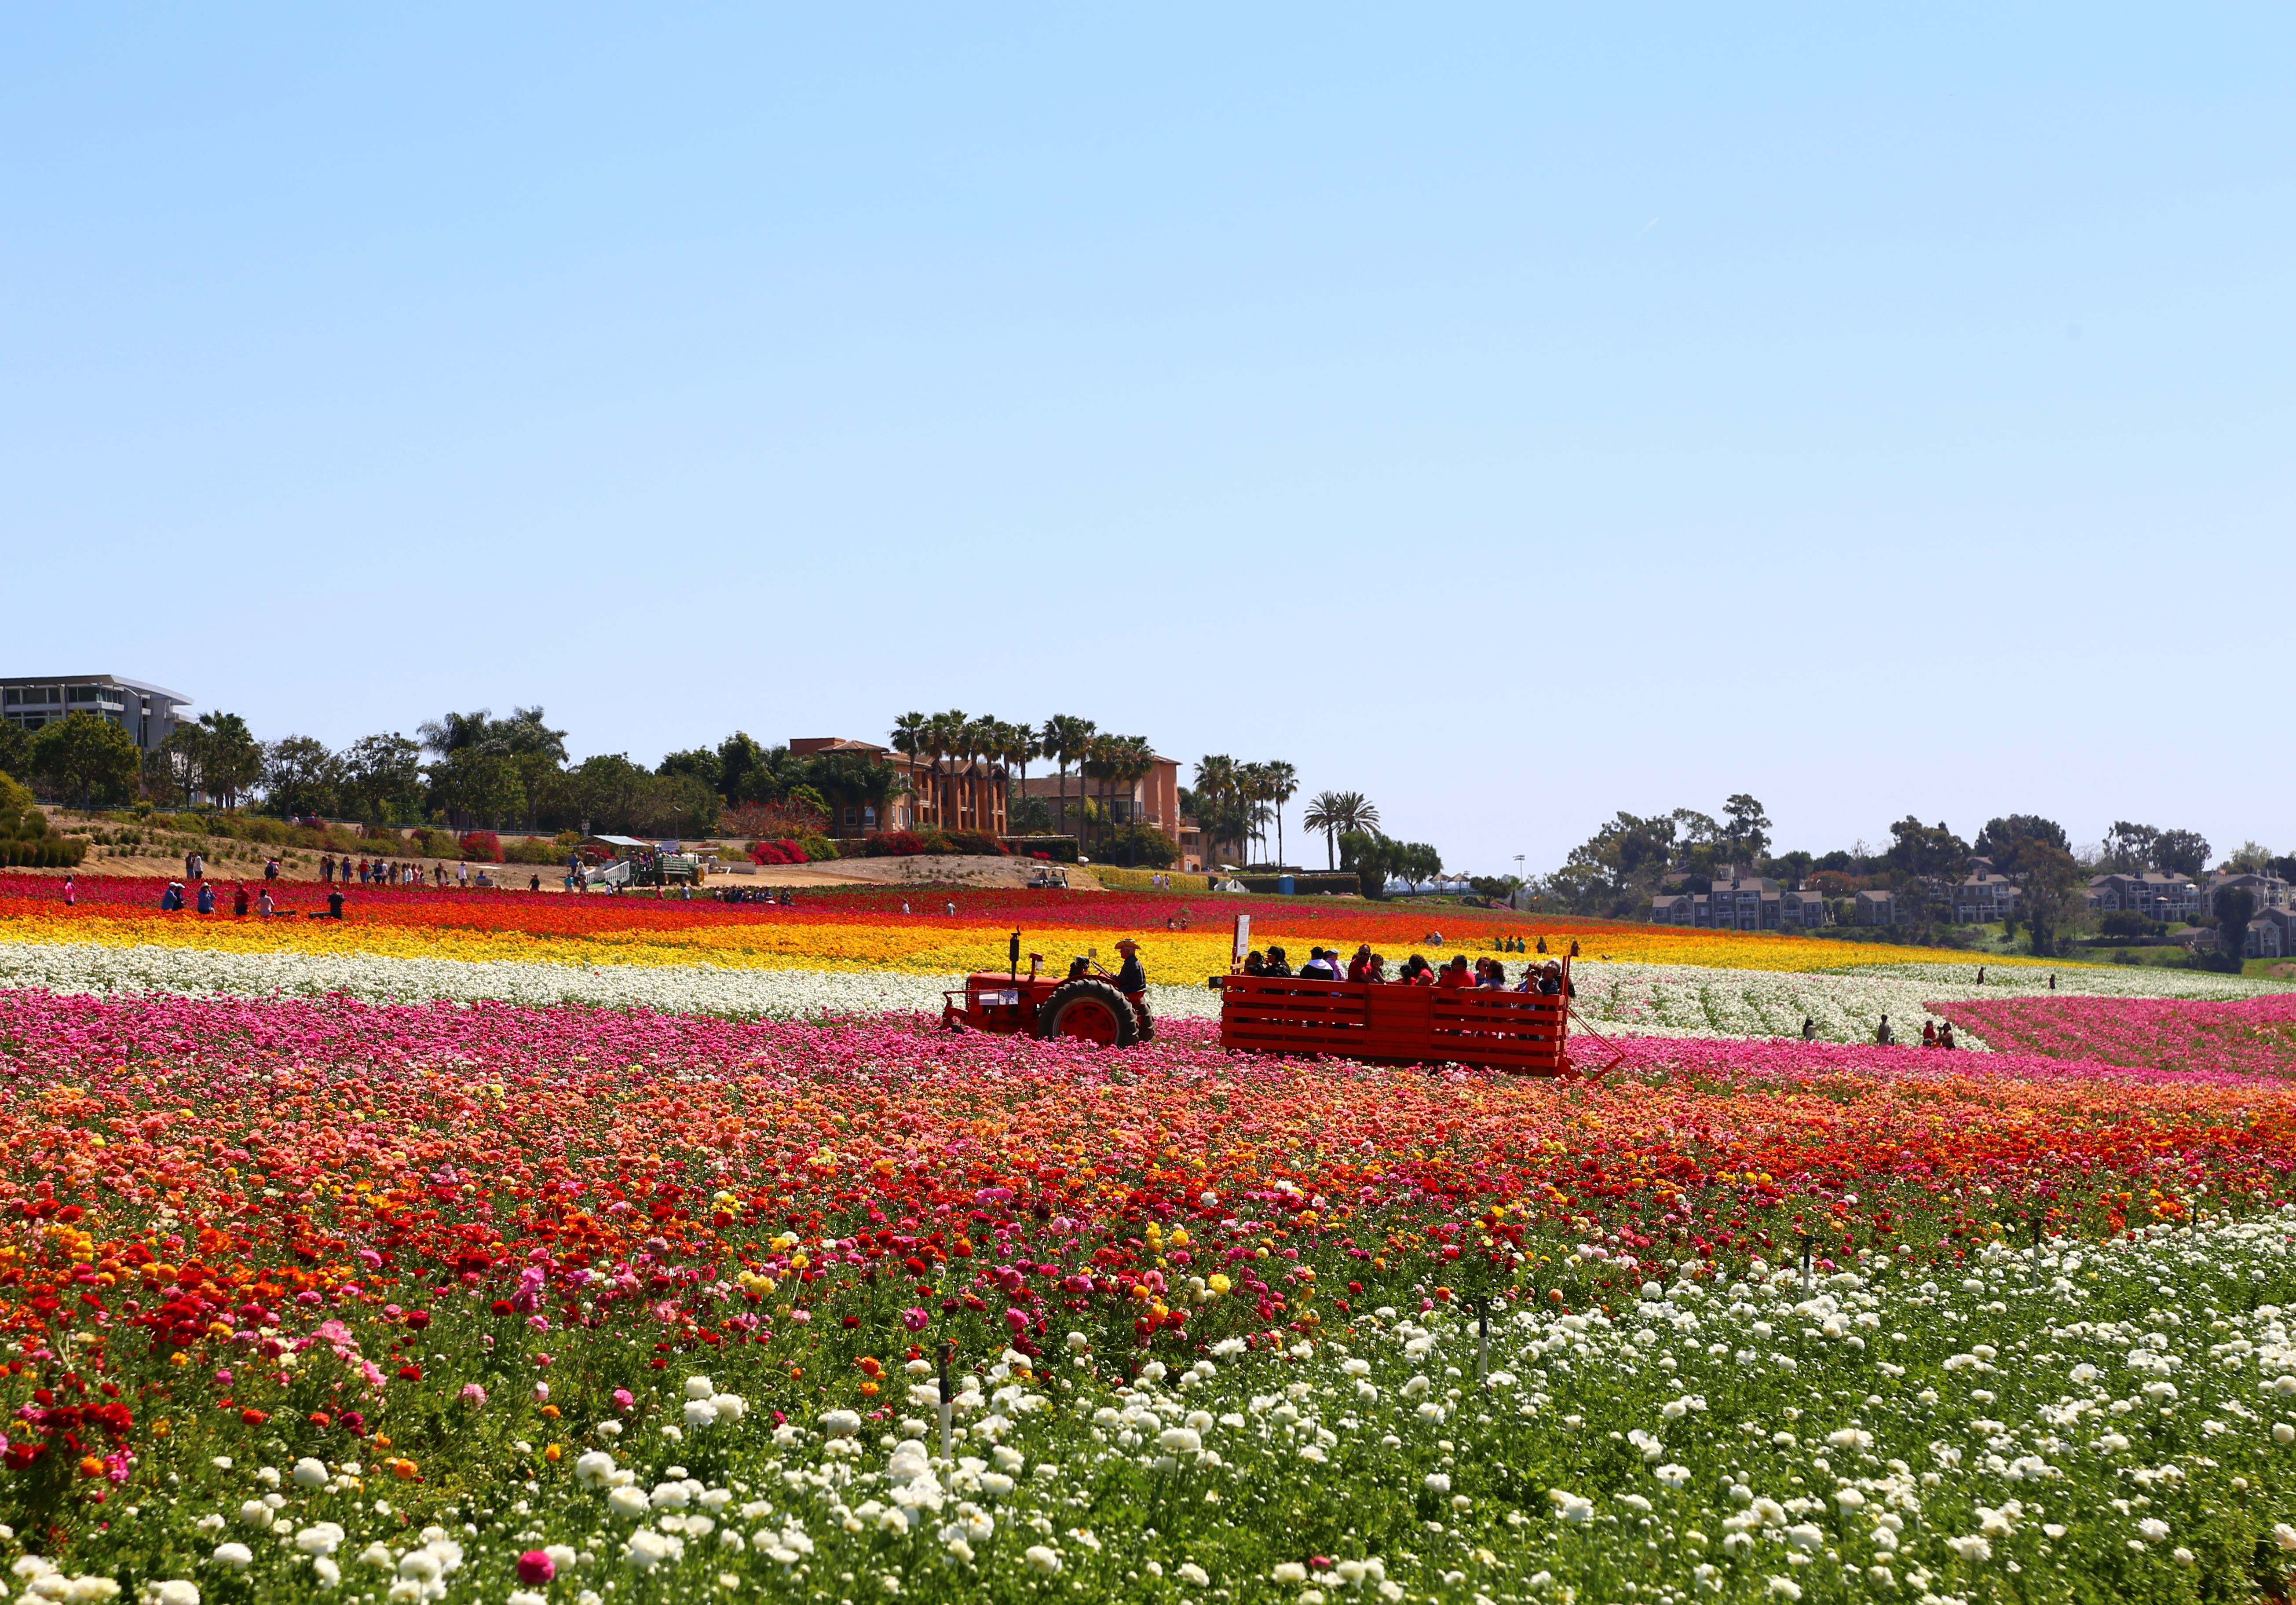 14. The Flower Fields Of Carlsbad California